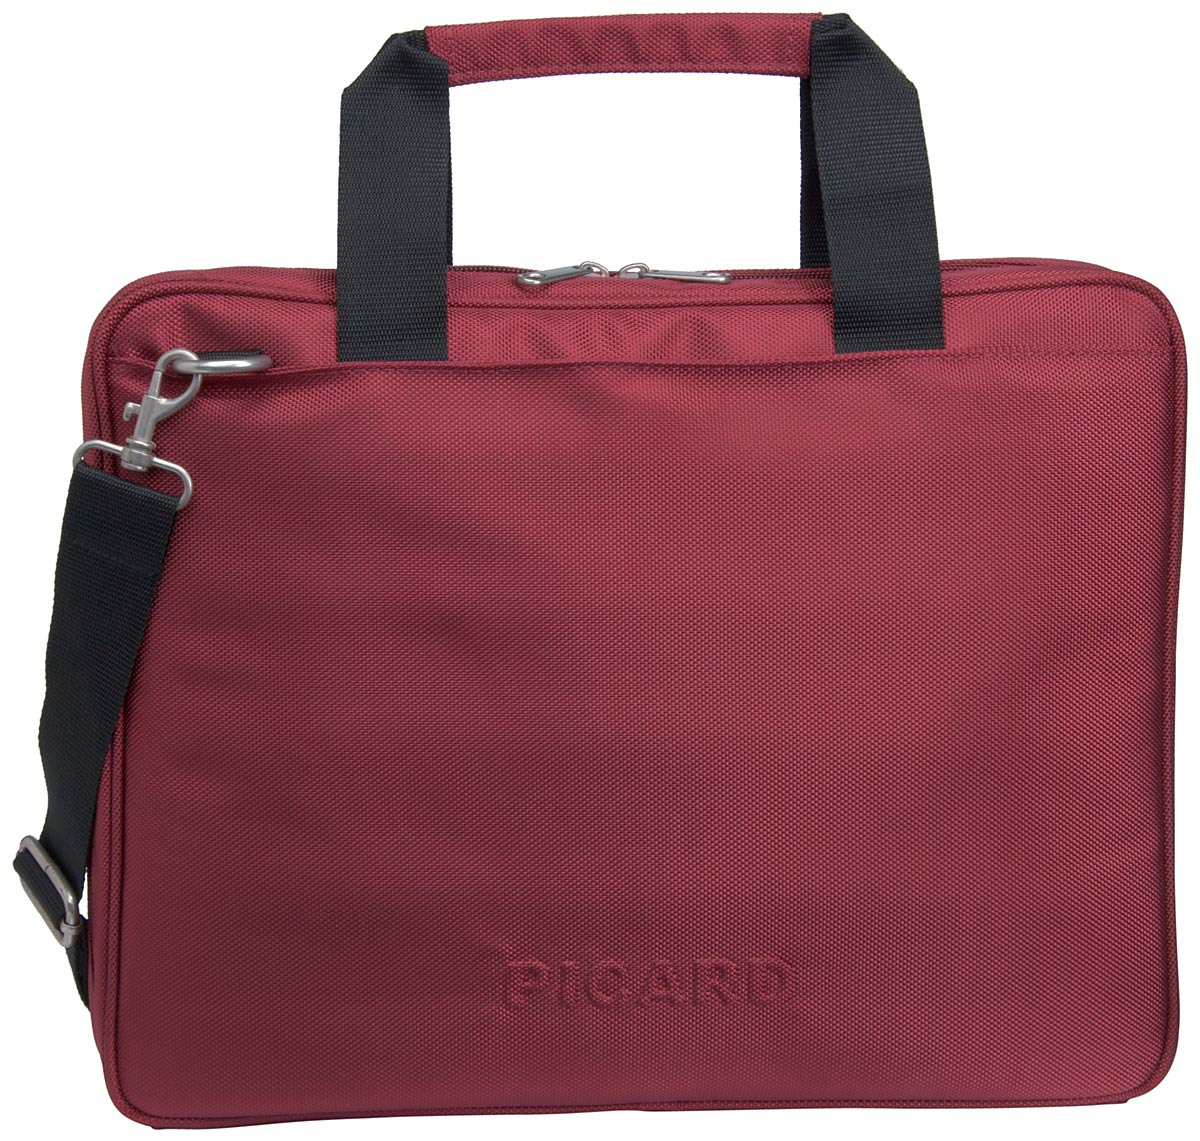 Picard Laptophülle Notebook Business Tasche large Rot